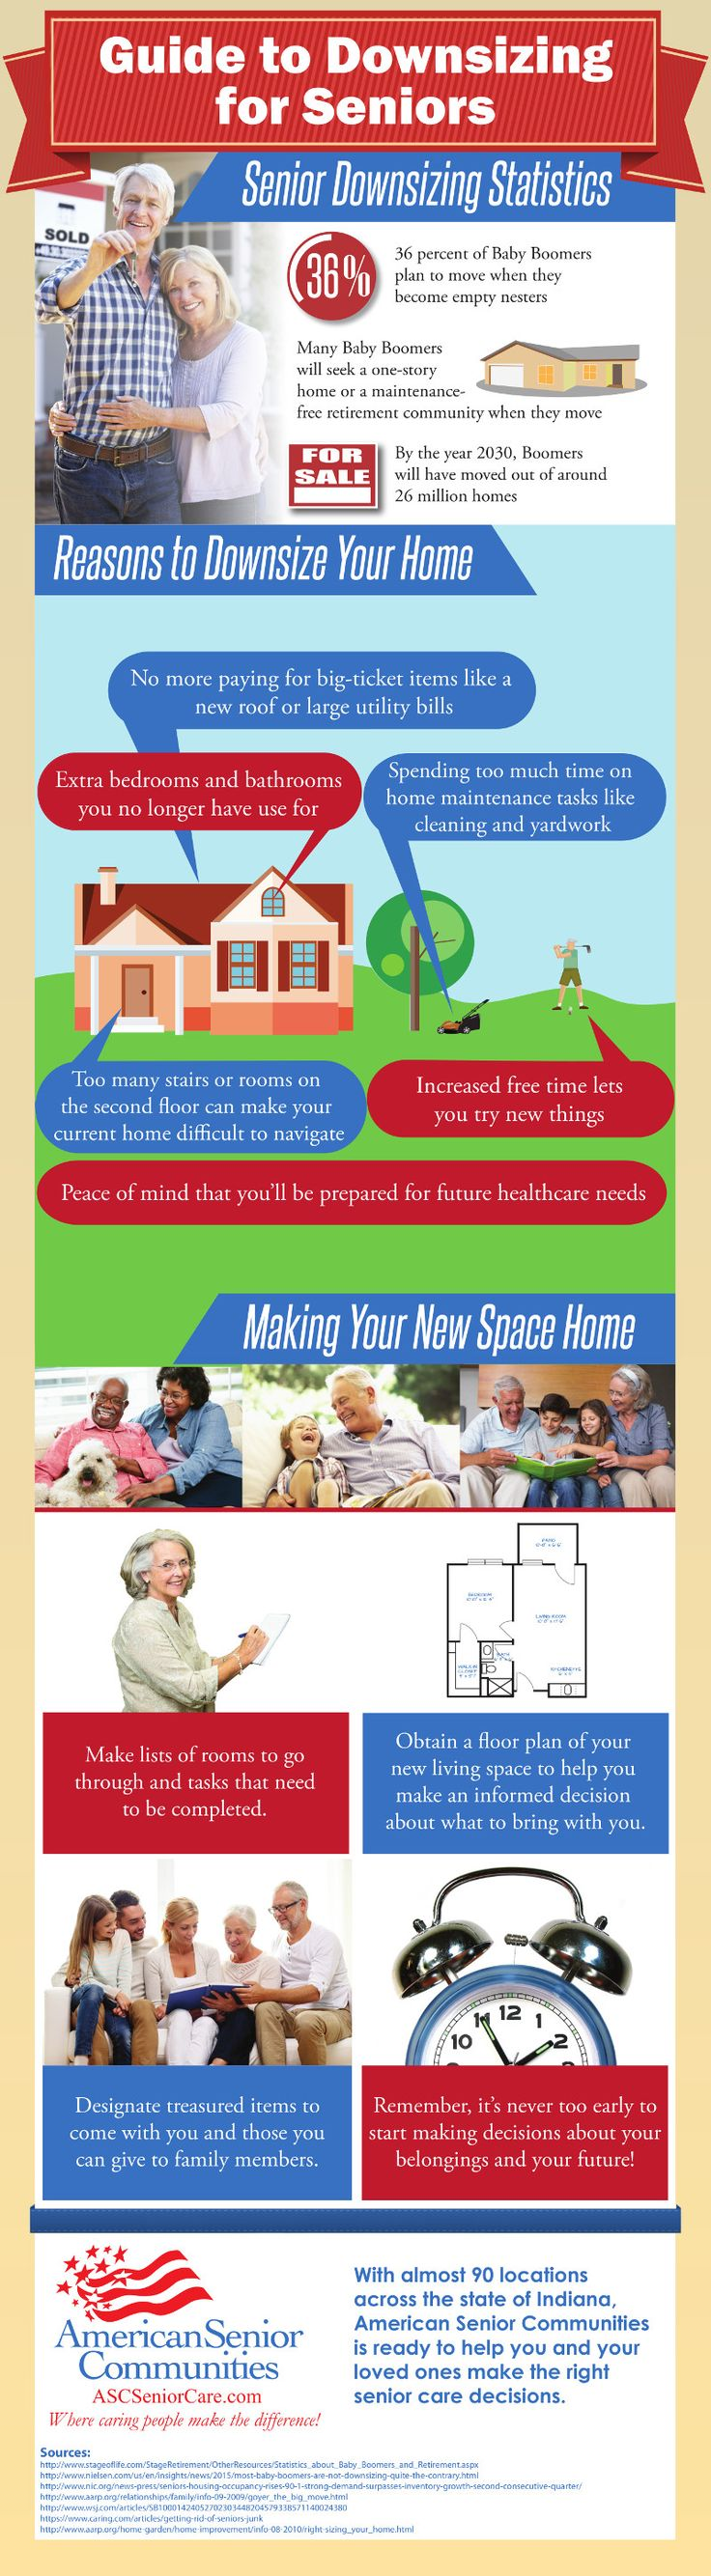 downsizing tips for seniors infographic infographics downsizing tips tips small condo. Black Bedroom Furniture Sets. Home Design Ideas